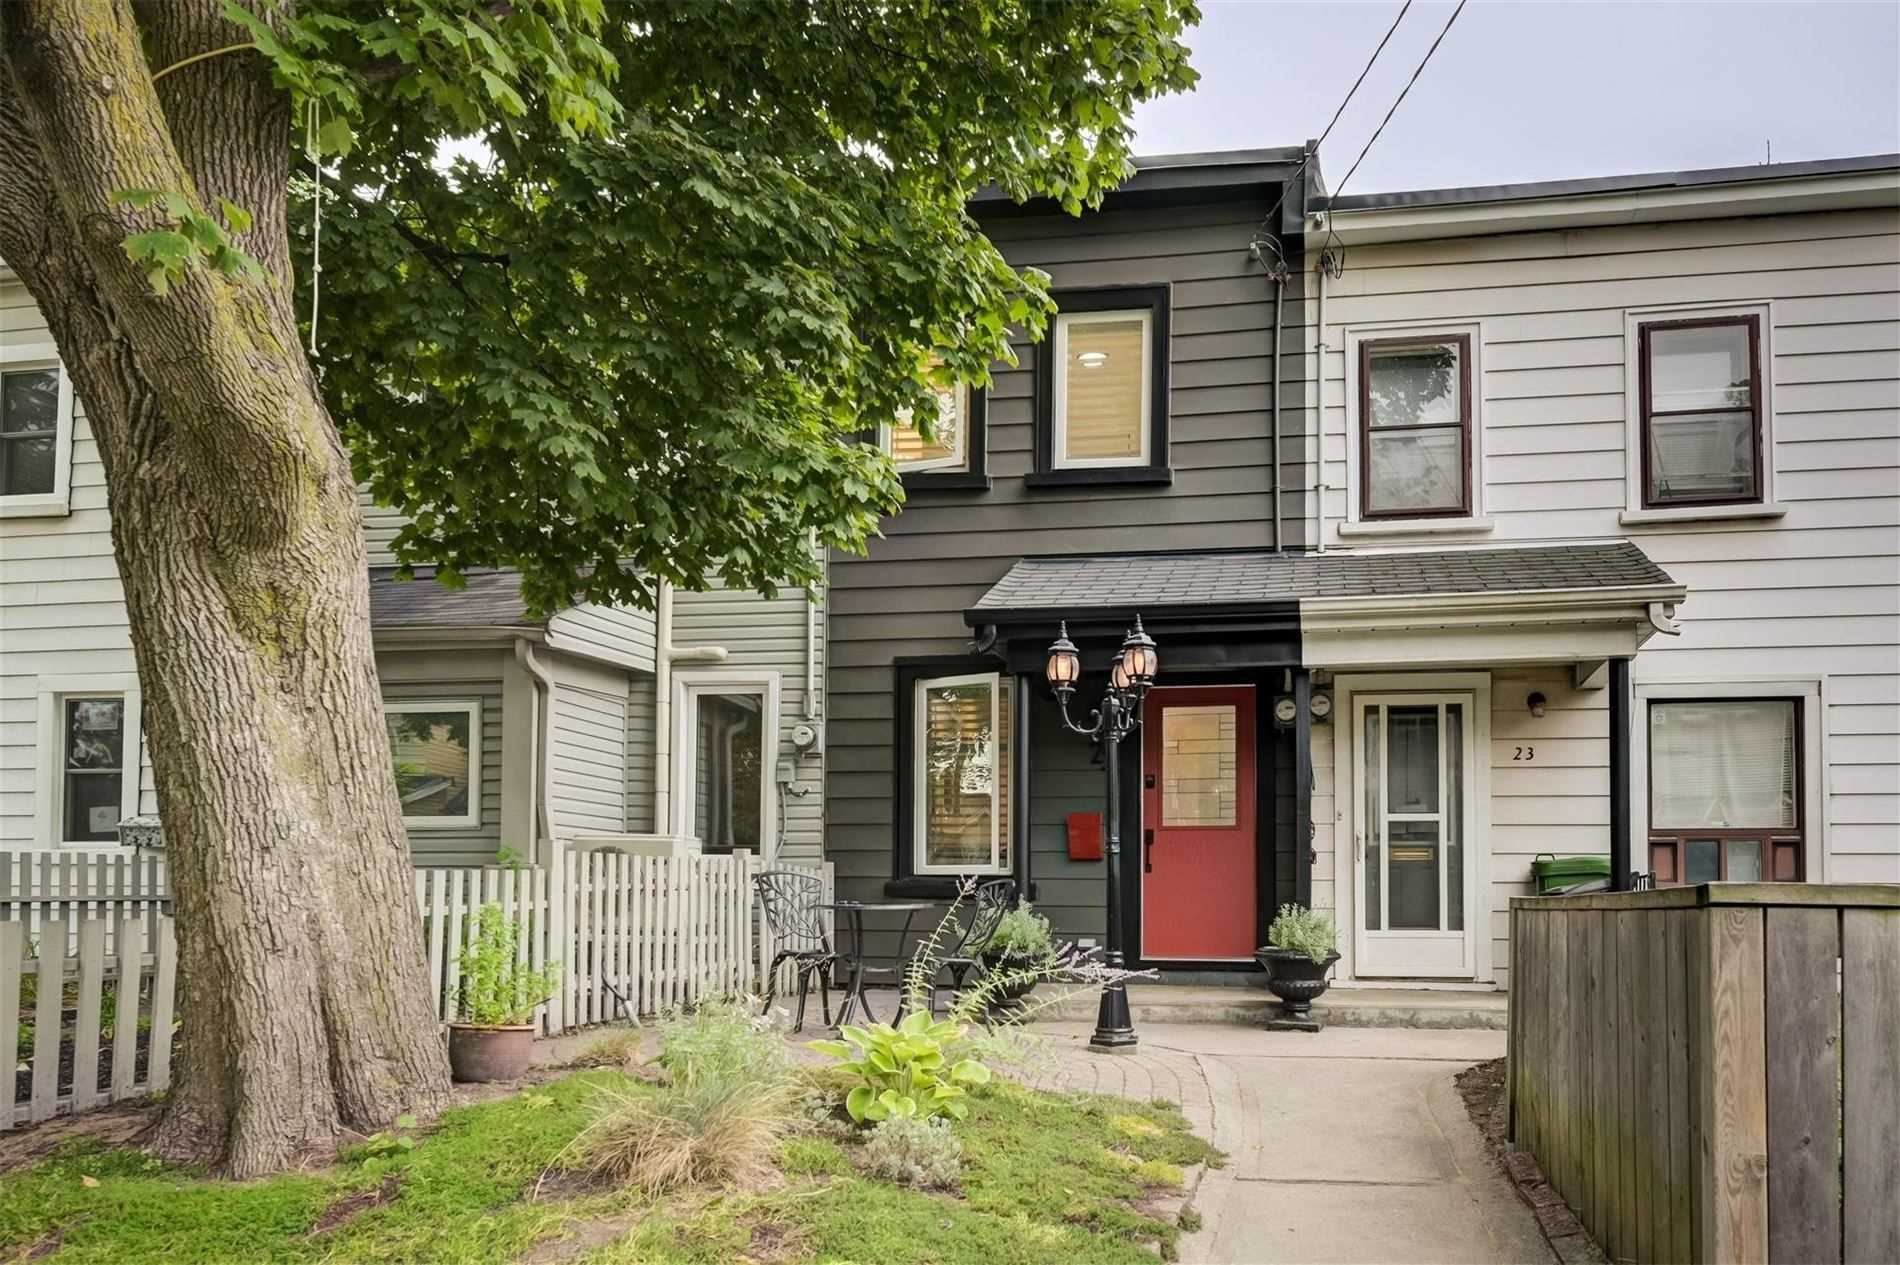 25 Myrtle Ave, Toronto, Ontario M4M2A3, 2 Bedrooms Bedrooms, 5 Rooms Rooms,2 BathroomsBathrooms,Att/row/twnhouse,For Sale,Myrtle,E4906267